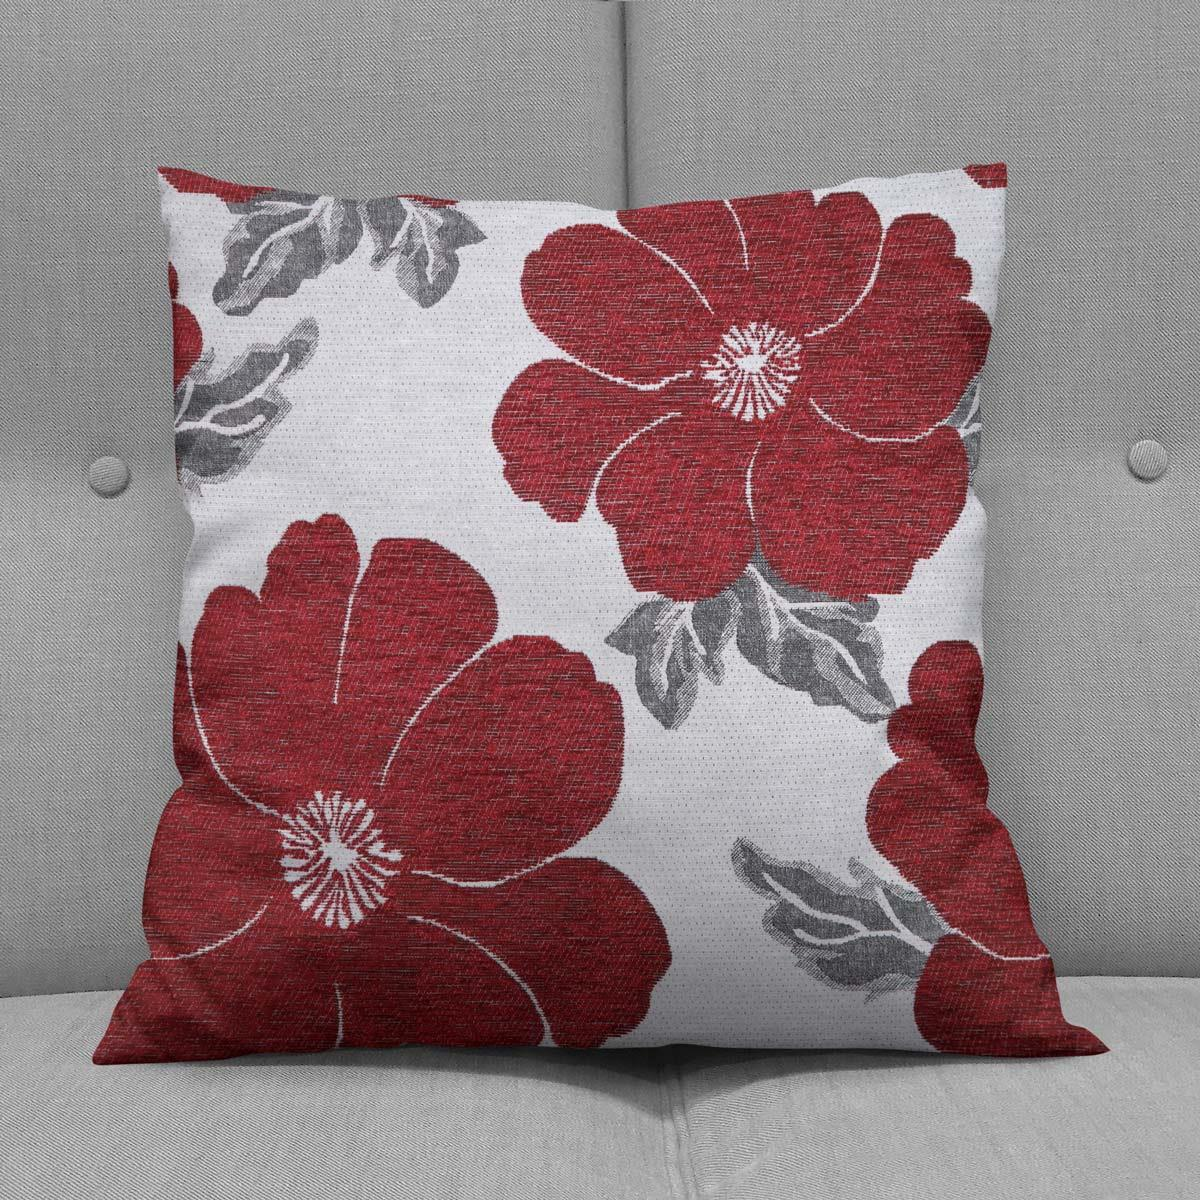 Chenille-Cushion-Cover-Floral-Reversible-Thick-Cushions-Covers-18-034-22-034-9-Colours thumbnail 37